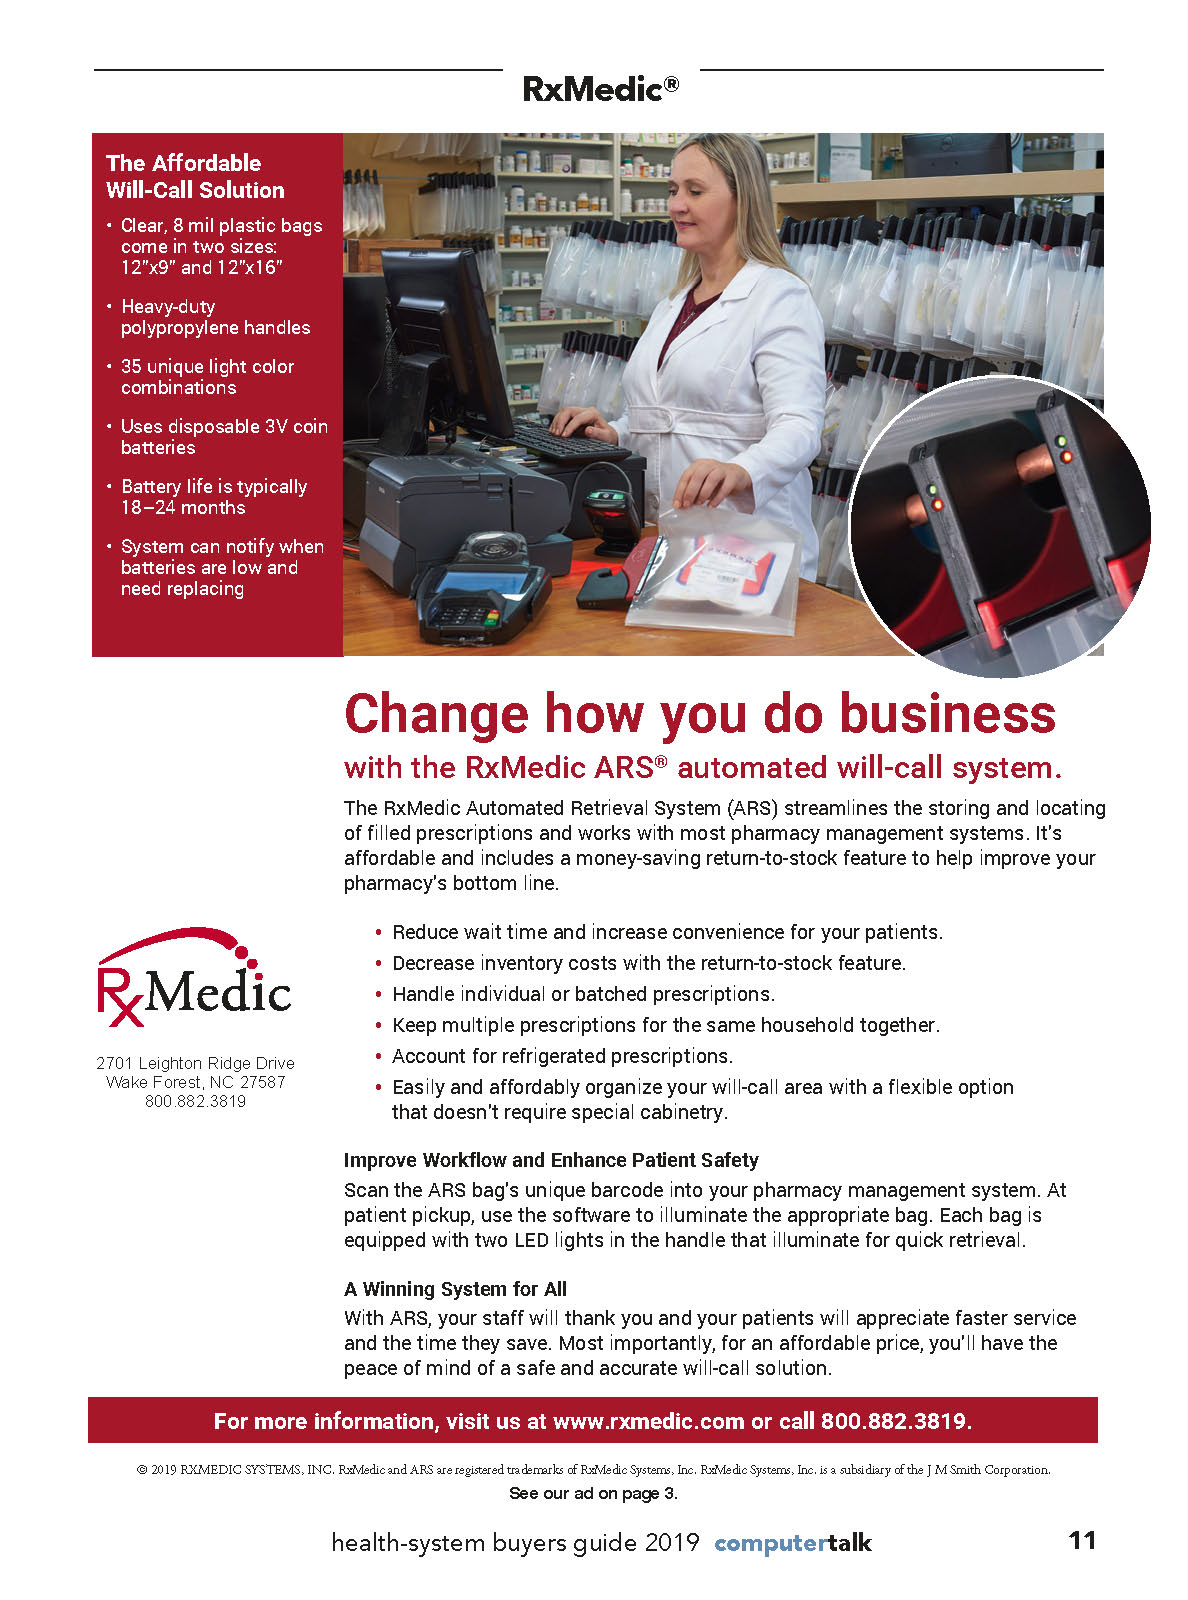 ComputerTalk_2019_Health-System_Buyers_Guide-RxMedic